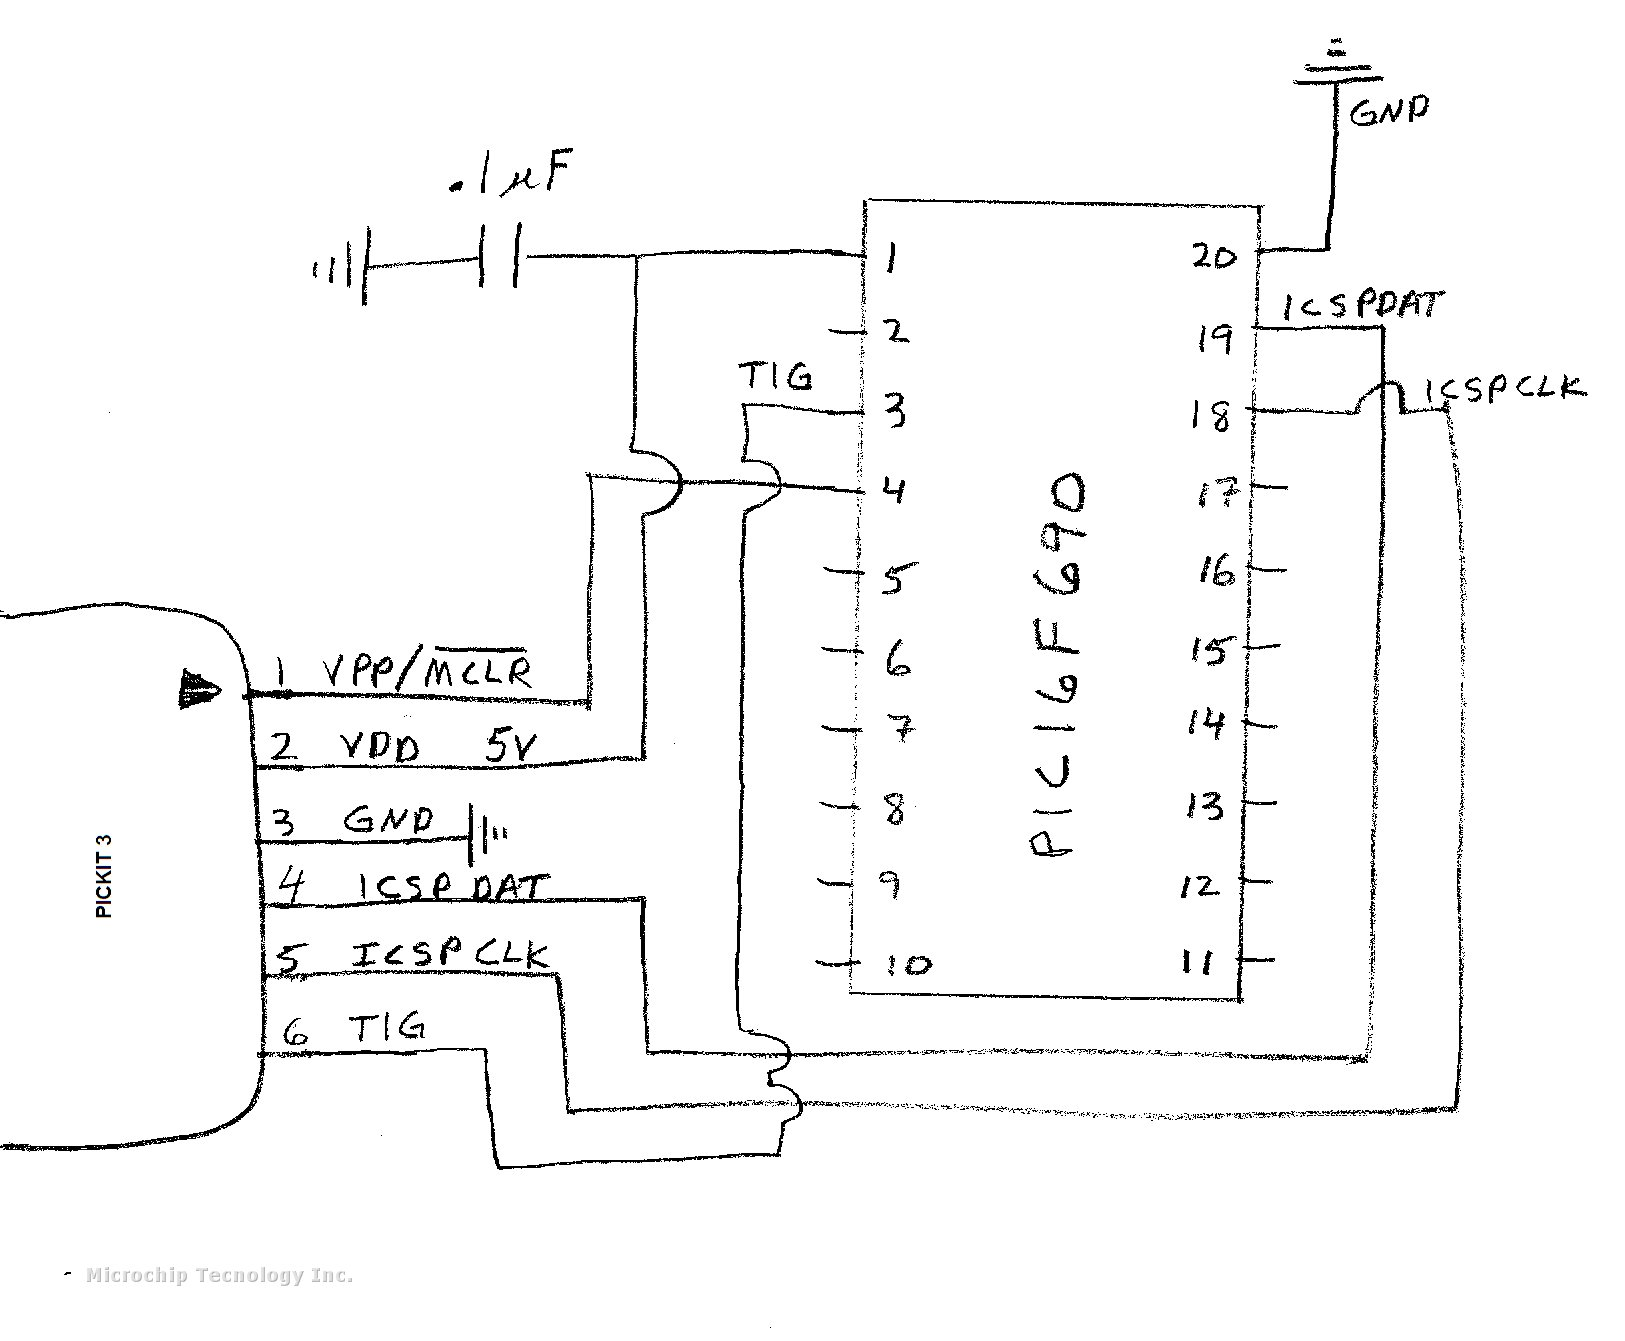 File 4013 Pinout in addition SIM card interface block diagram as well Datacenters further Pickit 3 Programmer Circuit Diagram as well 5pbdb 1997 Mountaineer Factory Radio Suv Purchased Previous Owner. on pinout diagrams